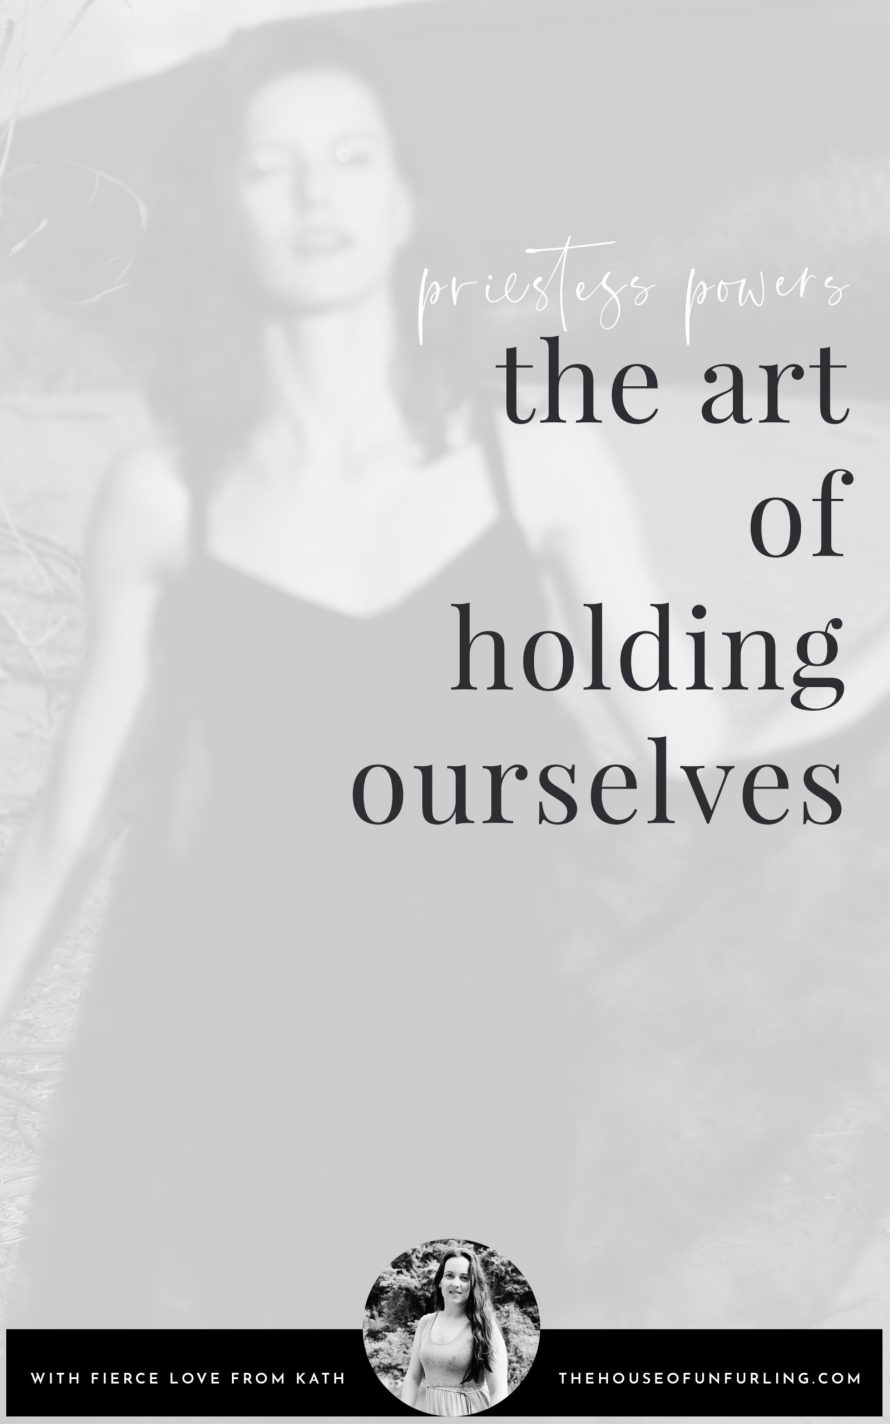 CLICK THROUGH TO READ: The Art Of Holding Ourselves. A Foundational Priestess Power. From The Priestess Path. With fierce love, Kath - kathleensaelens.com